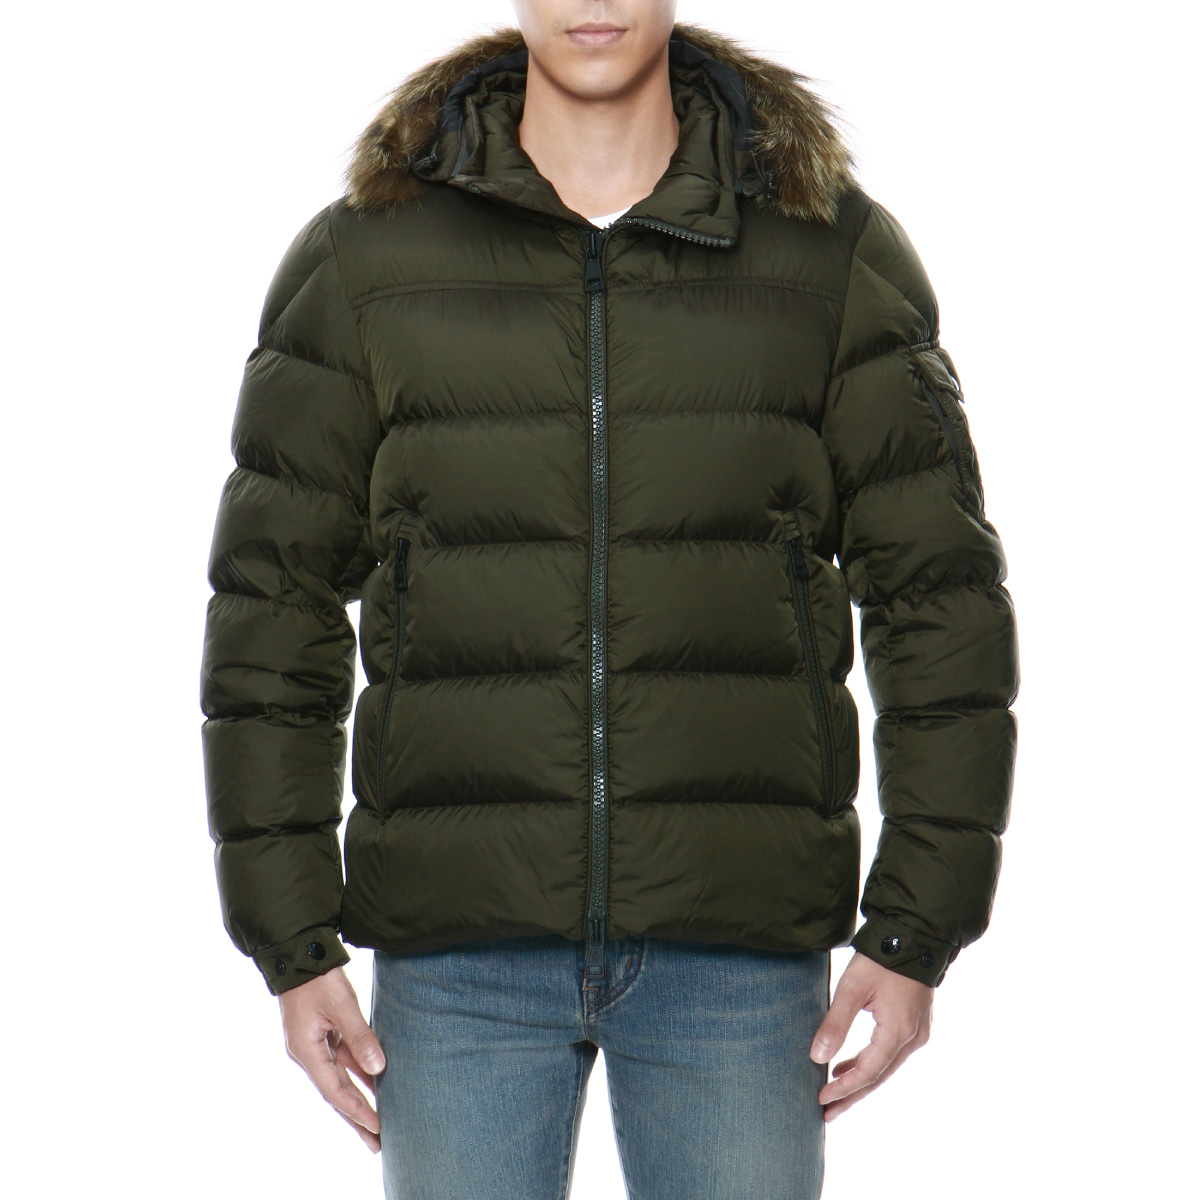 Down jacket MARQUE mark KHAKI green with Monk rail MONCLER outer men MARQUE  53227 256 fur   food 164d67d6b48